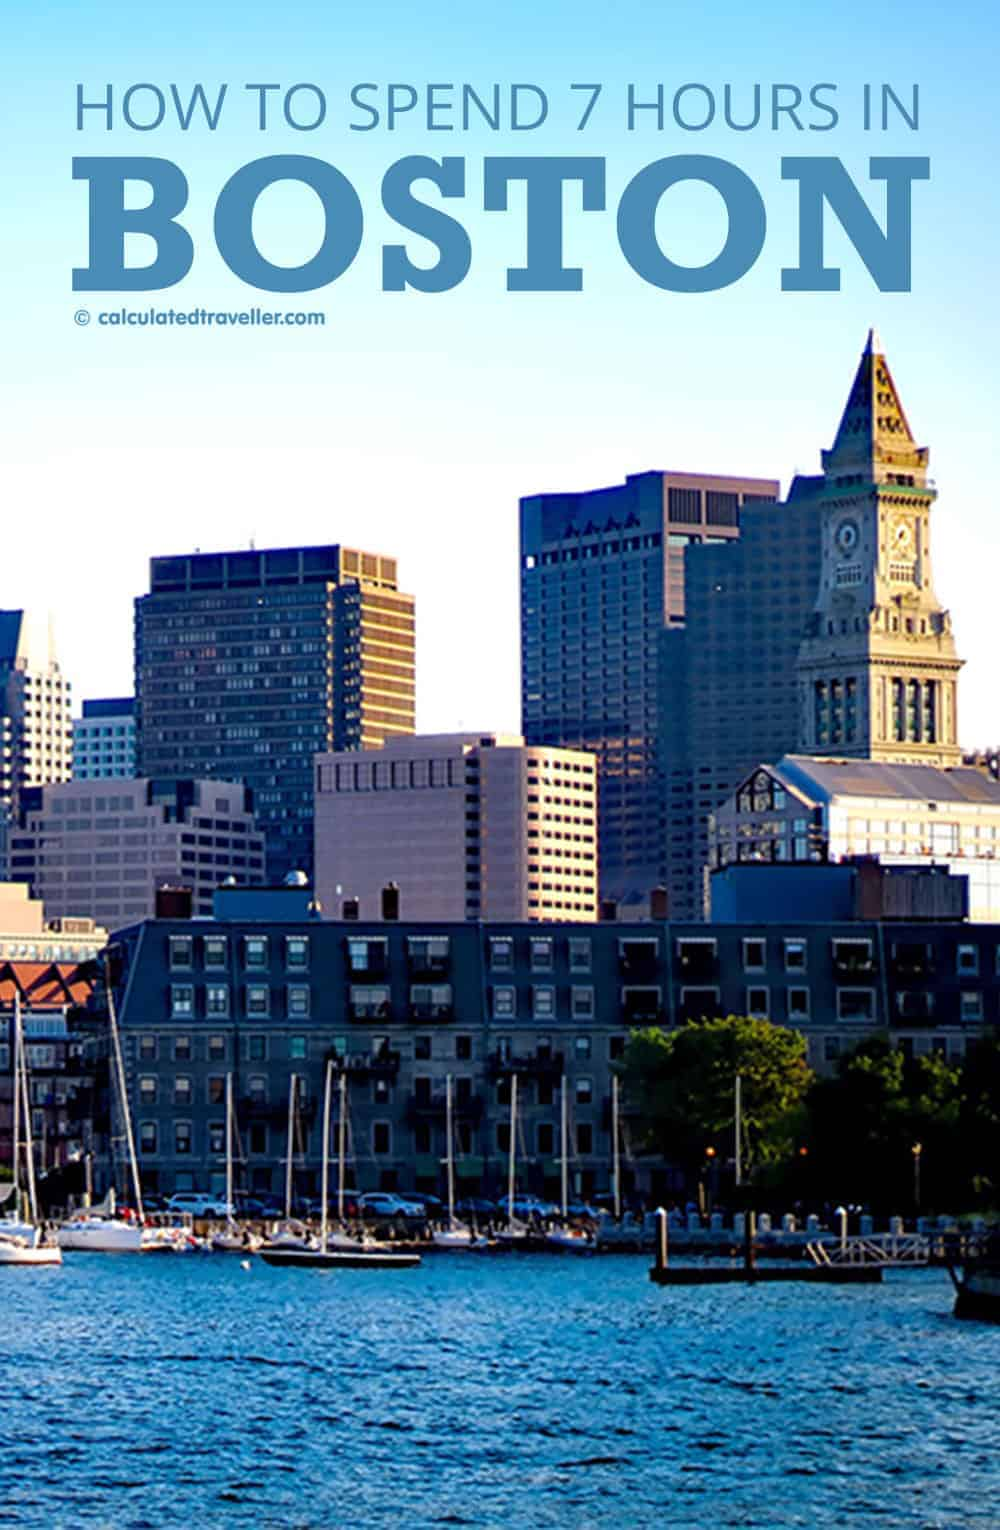 7 Hours in Boston: Clam Chowder, Crown Moulding & Crowded Subways. A Guide by Calculated Traveller Magazine. |  #Boston #cruise